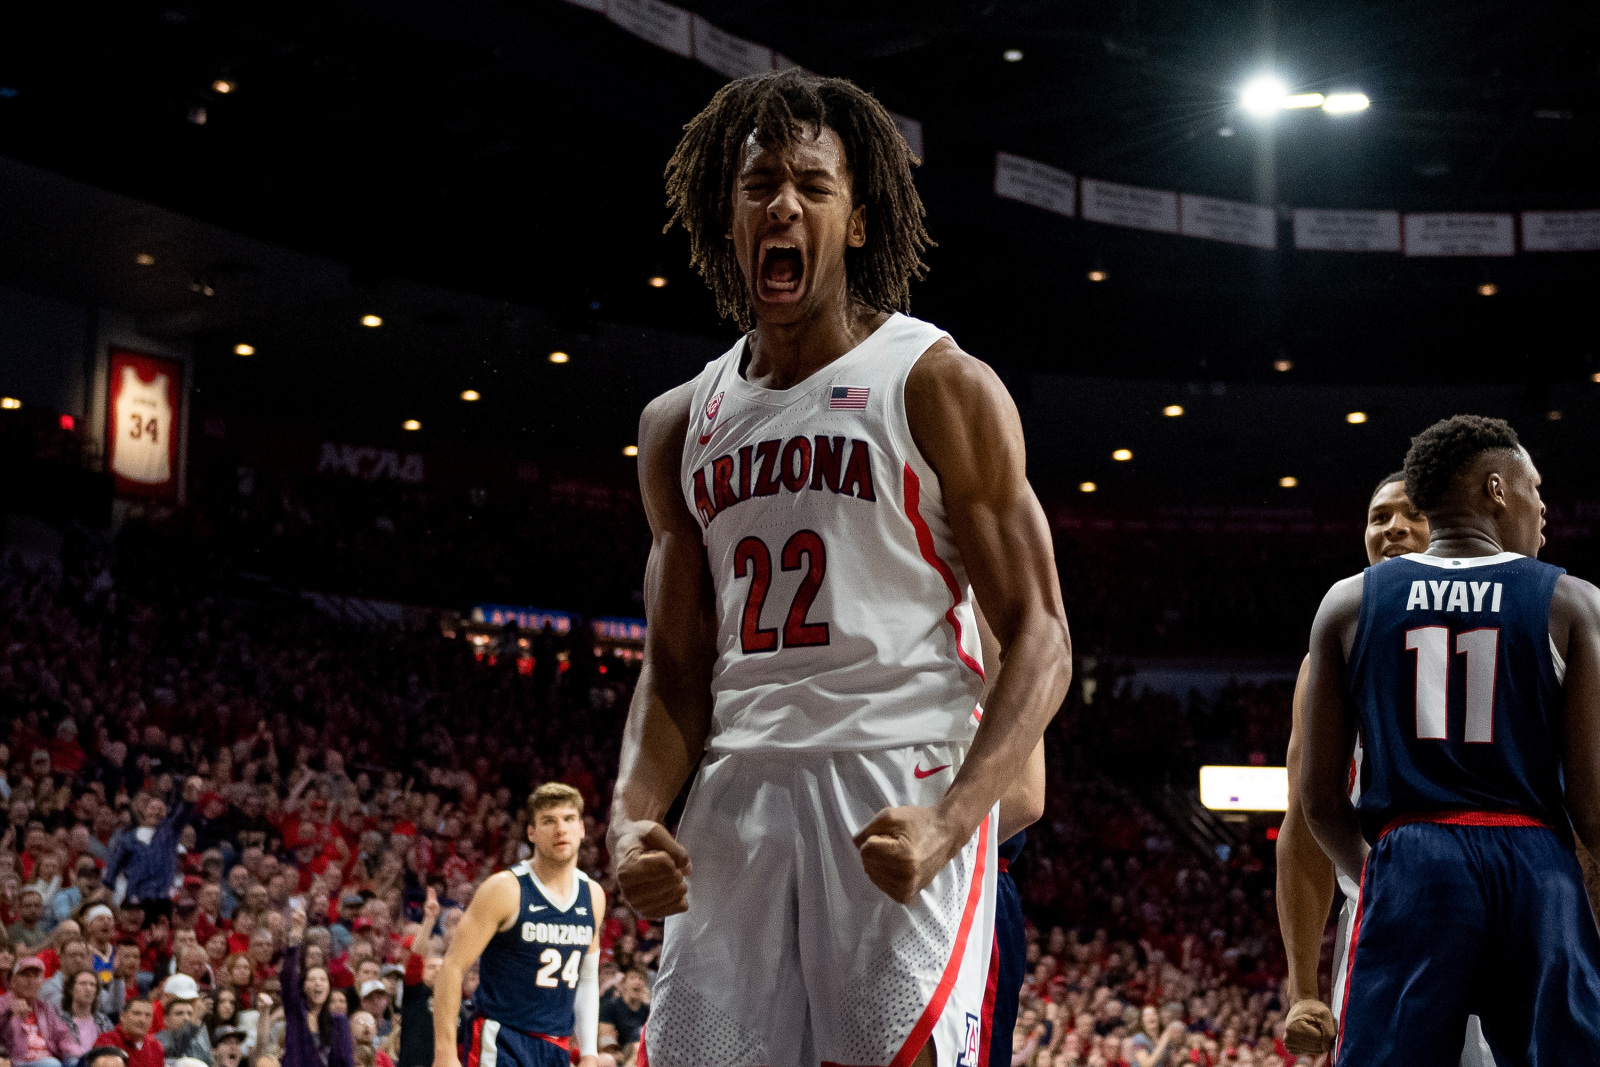 Arizona Basketball: How Zeke Nnaji Became The Best Wildcat